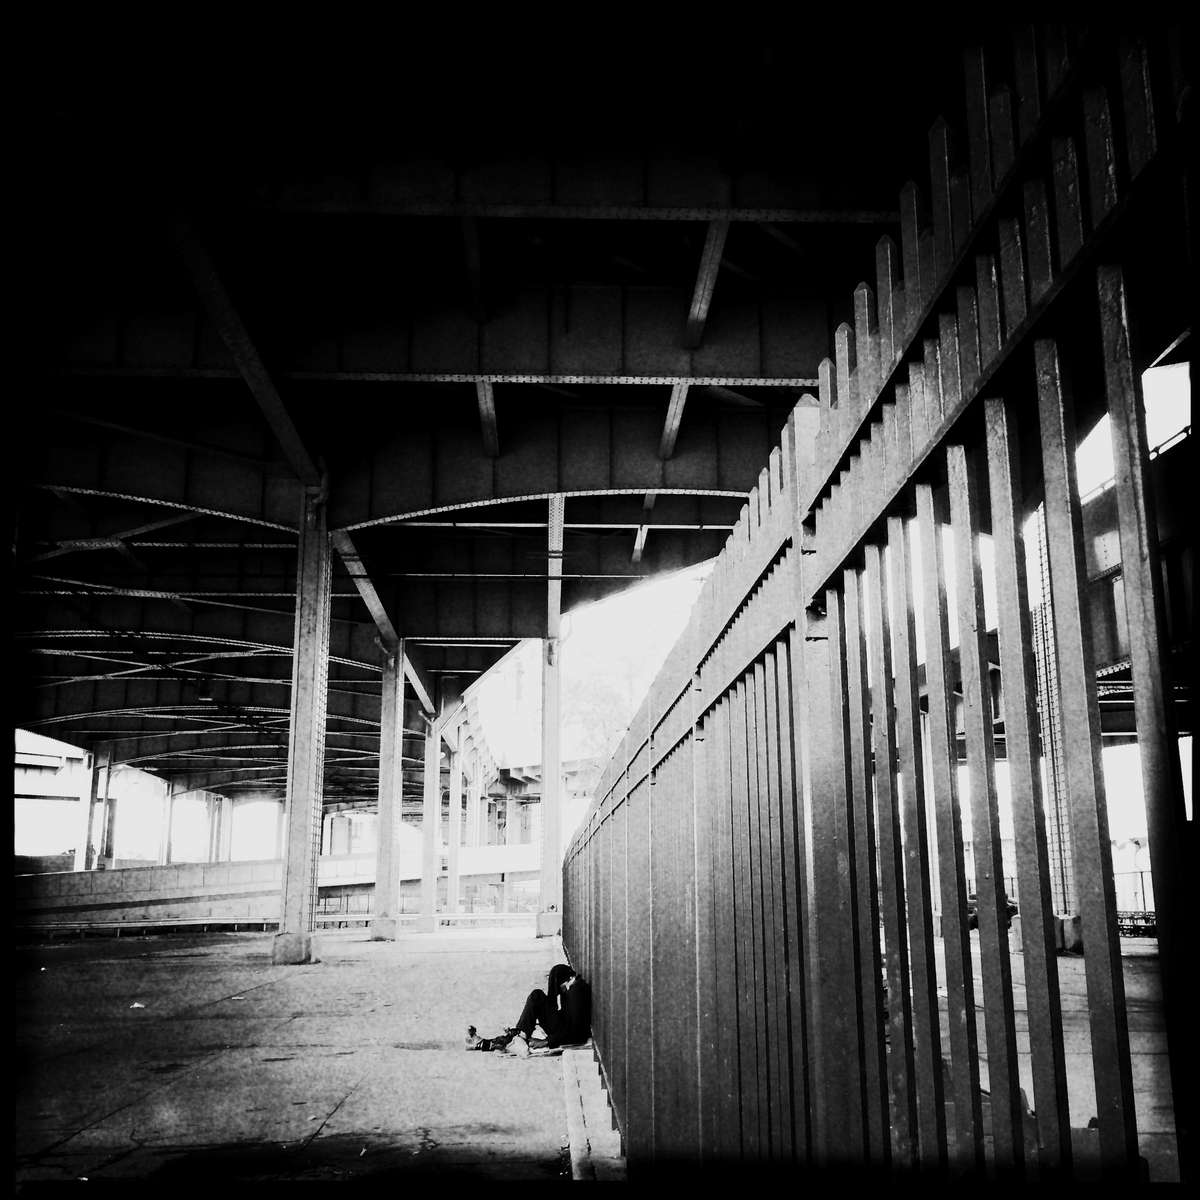 A man alone under the RFK Triborough Bridge. #lone #man #bridge #triboroughbridge #RFK_Triborough_Bridge #newyork